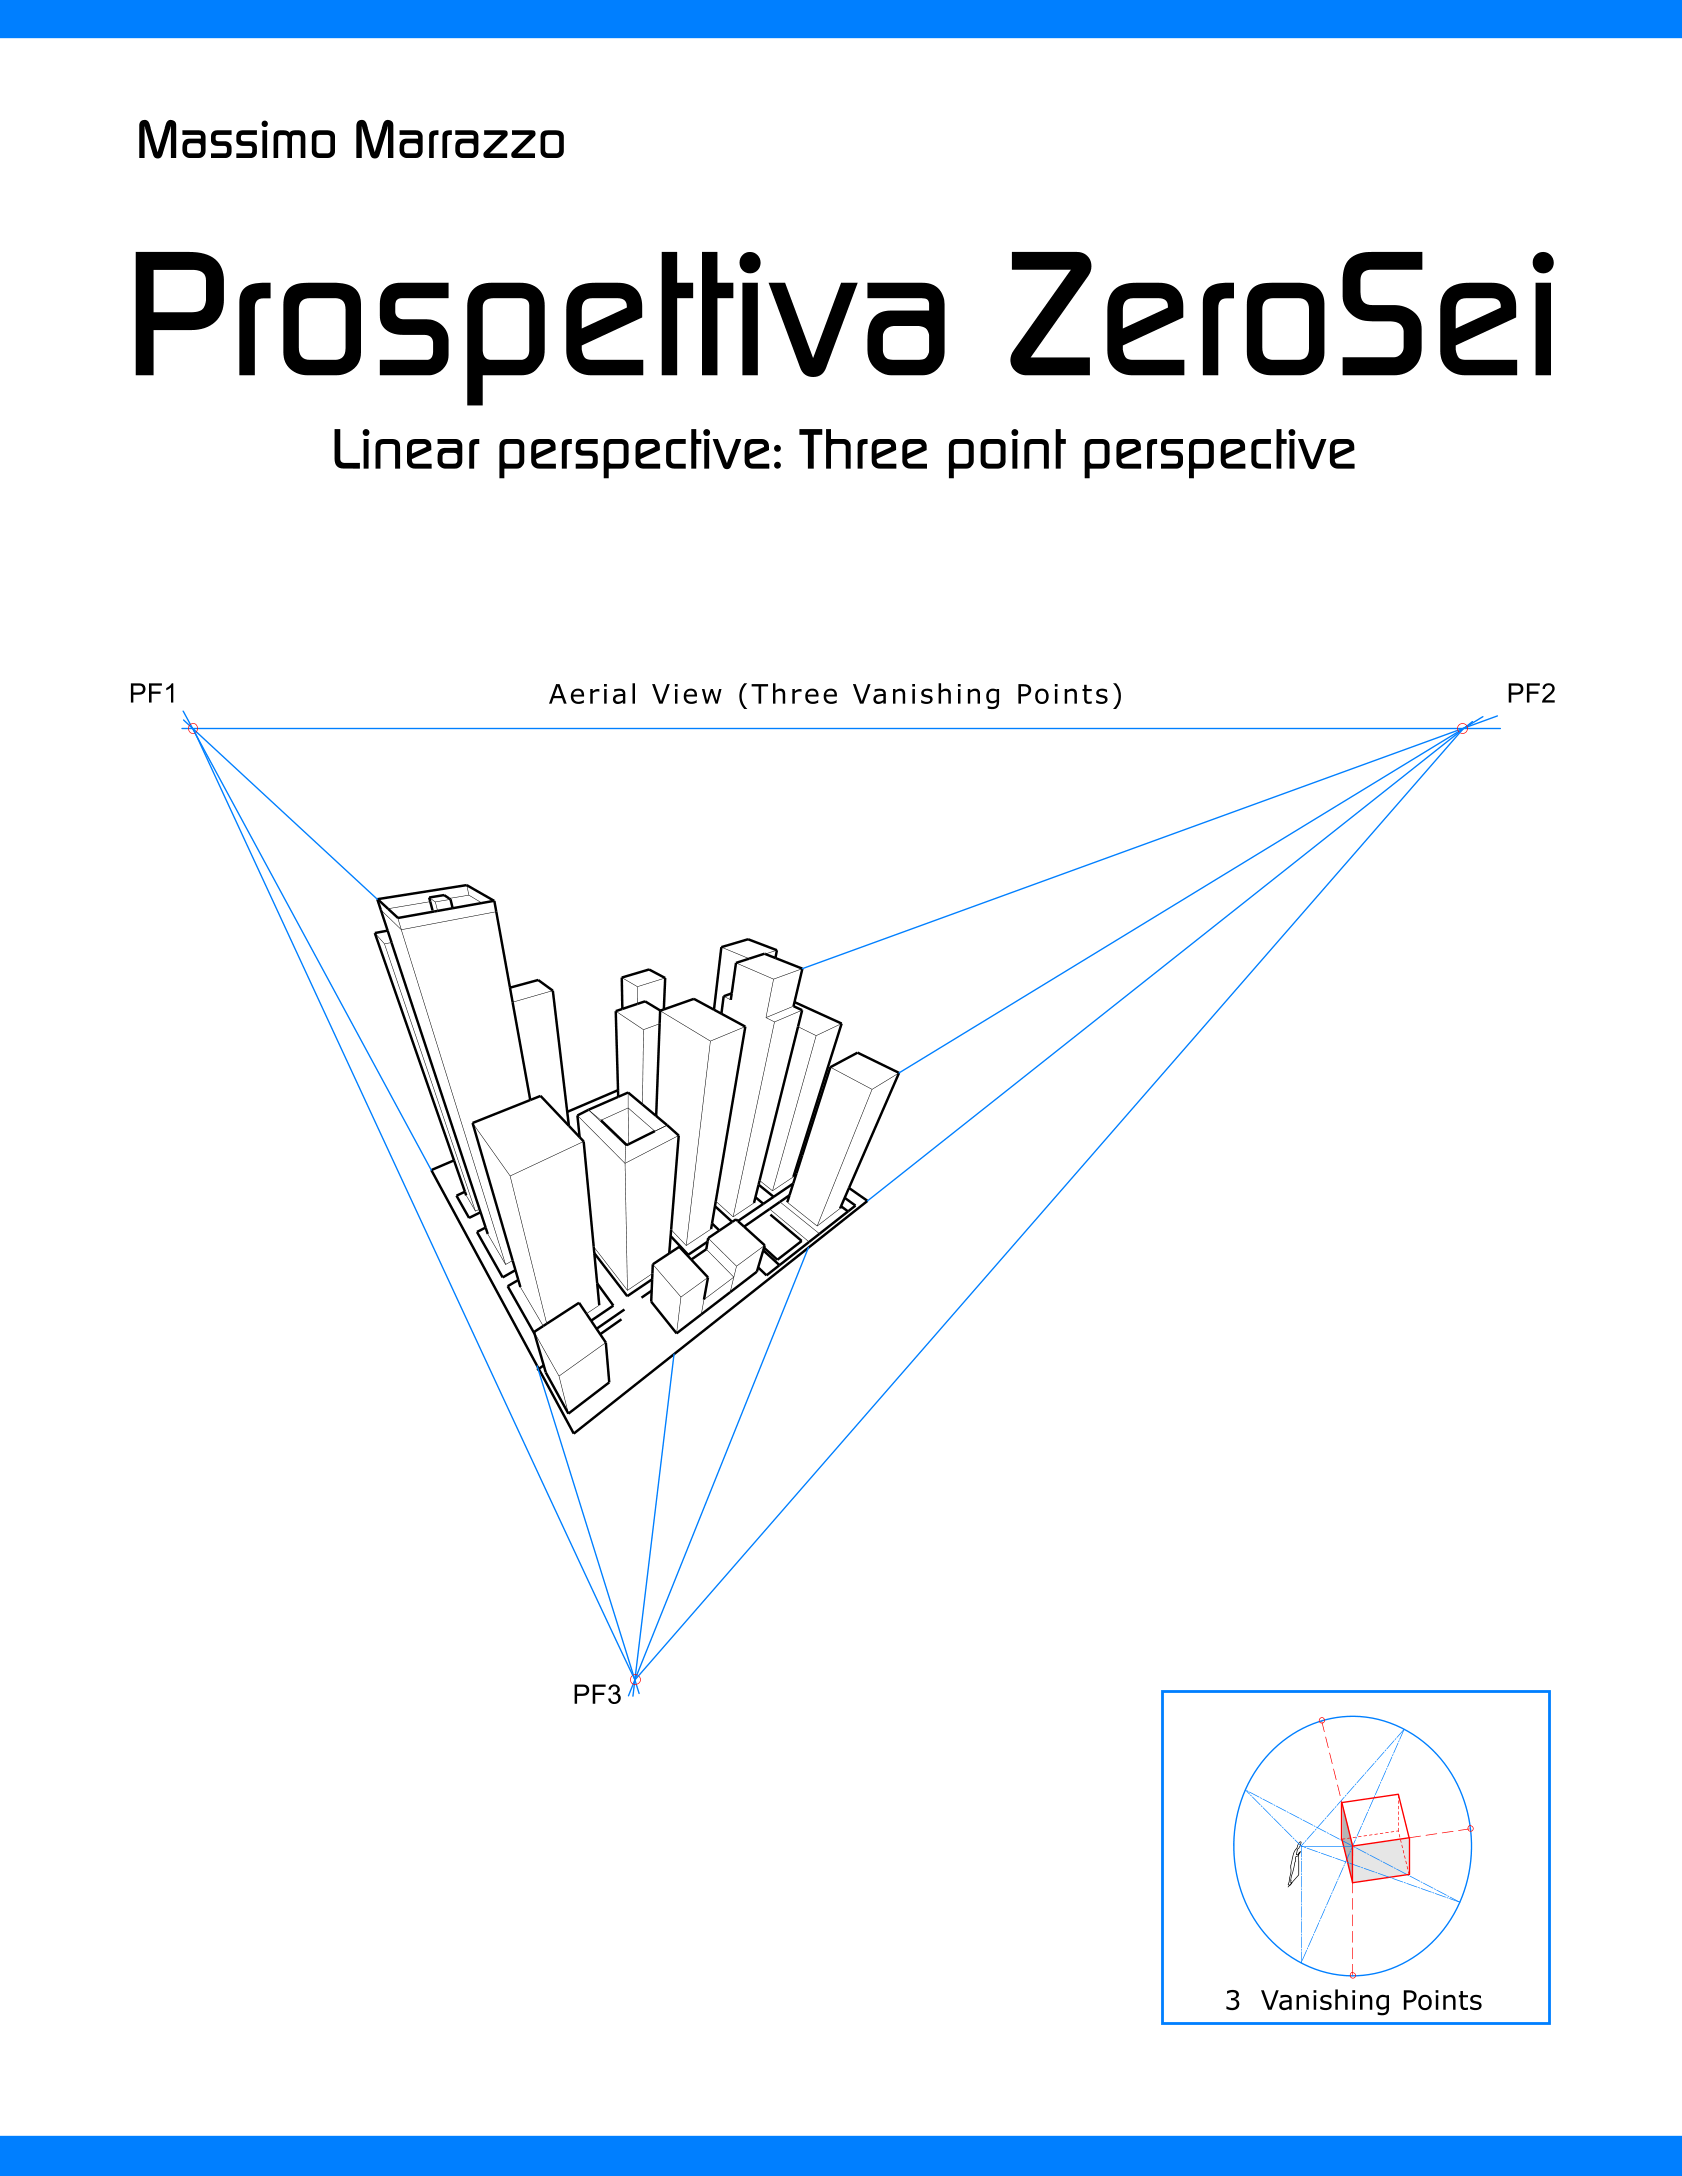 three_point_perspective_Massimo_Marrazzo